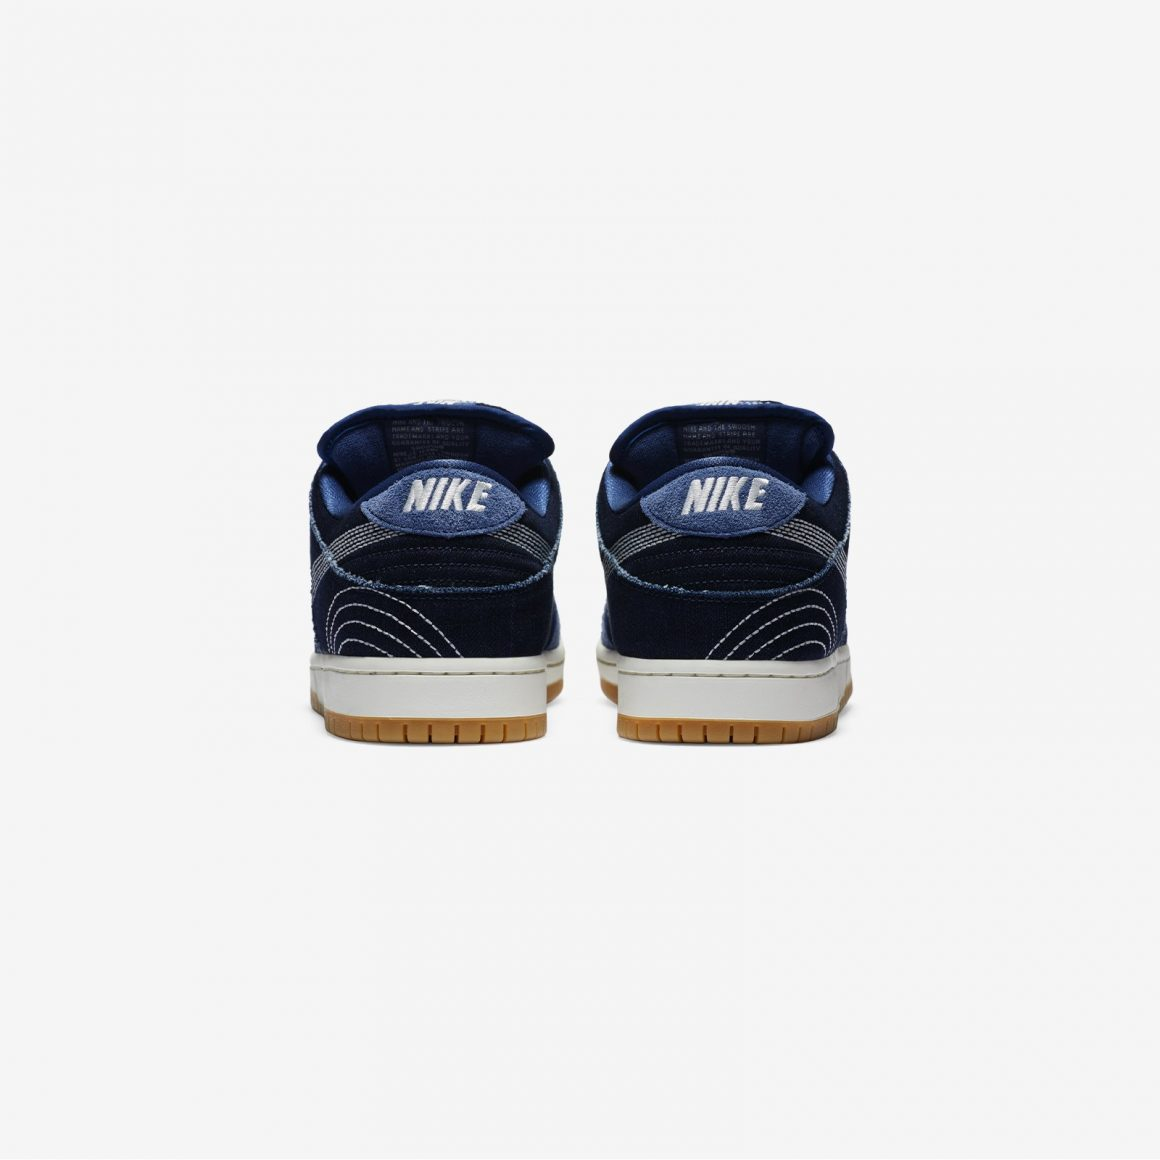 Nike SB Dunk Low ''Denim Gum'' - ''Sashiko'' Pack - CV0316-400